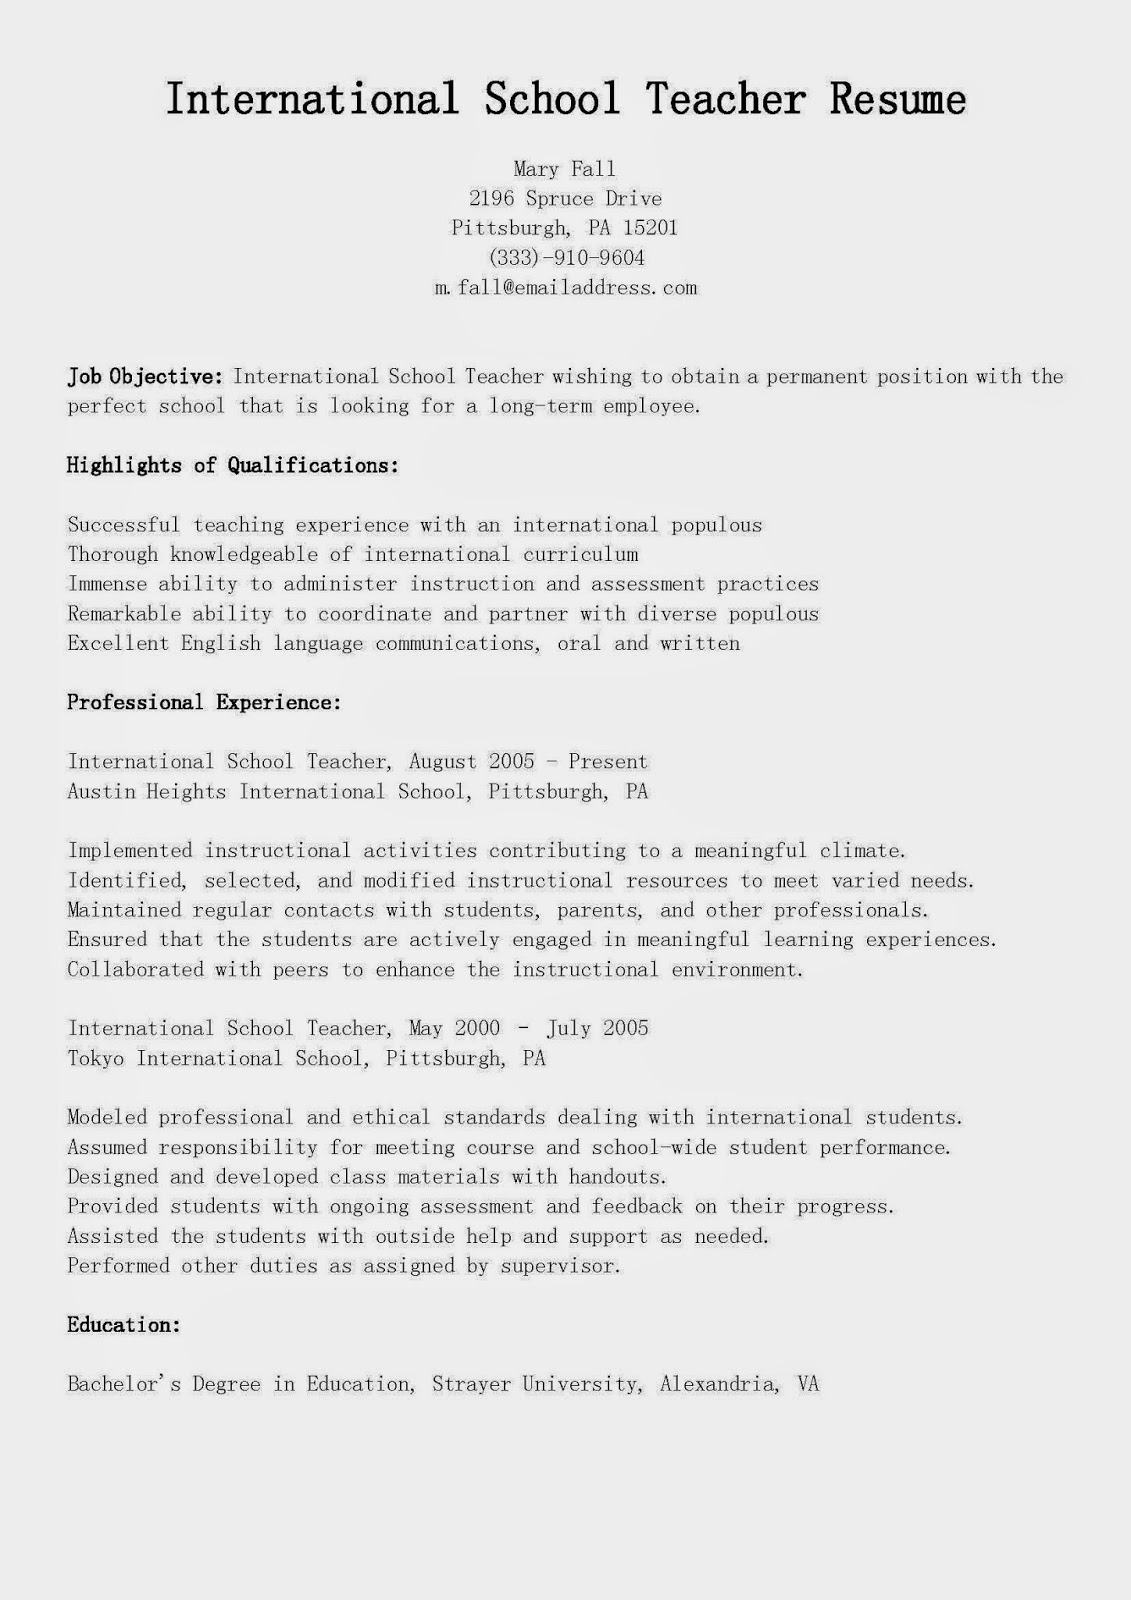 resume samples  international school teacher resume sample